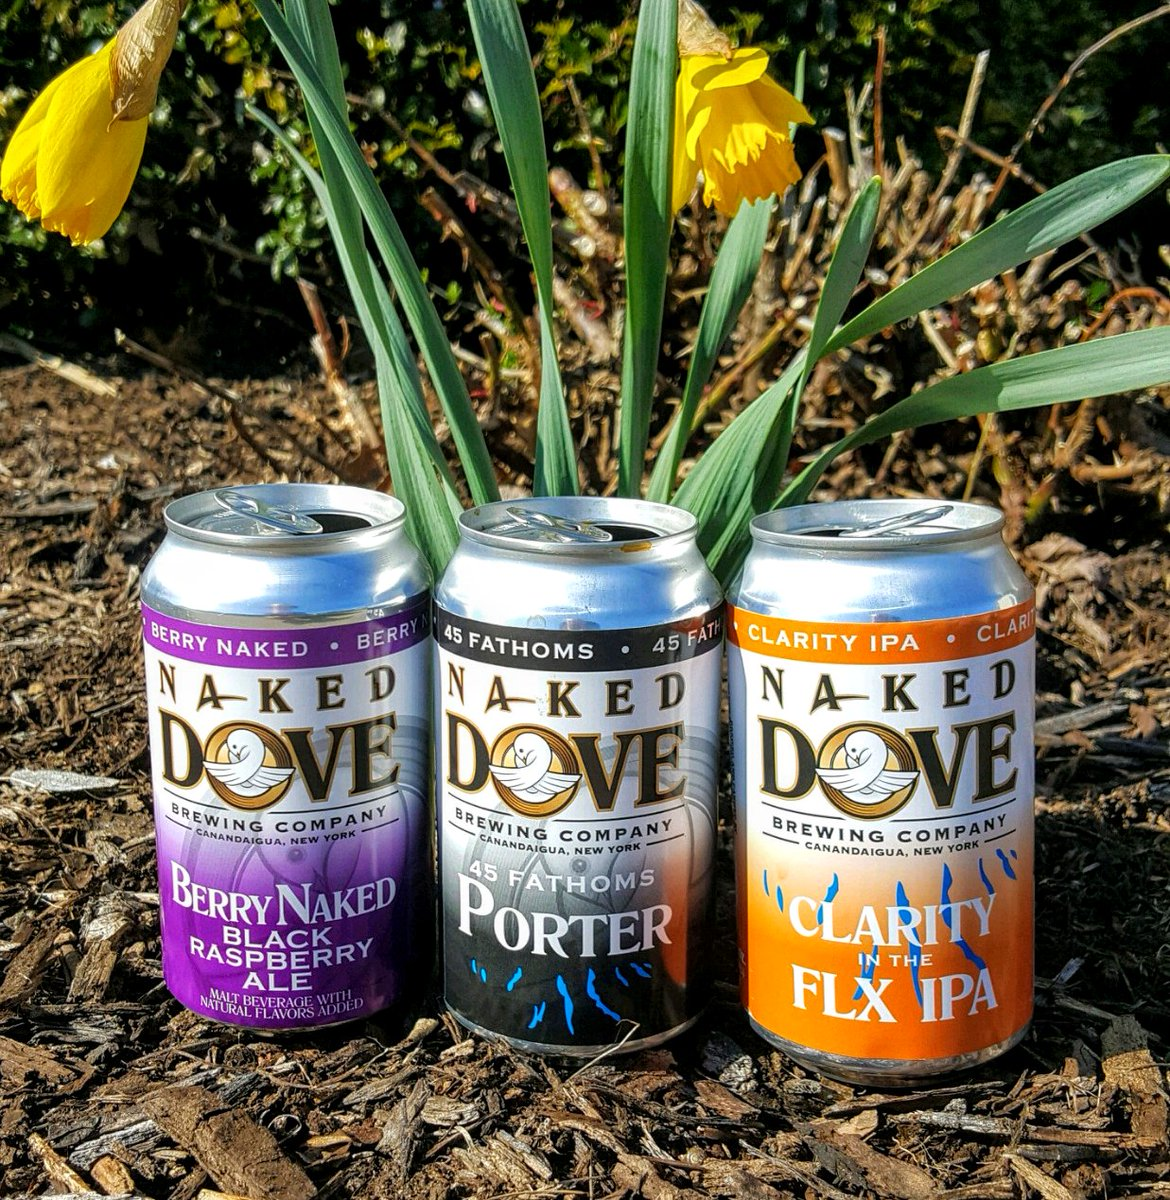 Ep. #32 is out!  This week we're drinking 3 beers from Naked Dove Brewing Co.  Besides that Sopko and Jim sit down with Naked Dove's head brewer and Rochester brewing legend Dave Schlosser. #CraftBeer #podcasts https://comeatmebrew.com http://comeatmebrew.libsyn.compic.twitter.com/4pMNBh0P7j